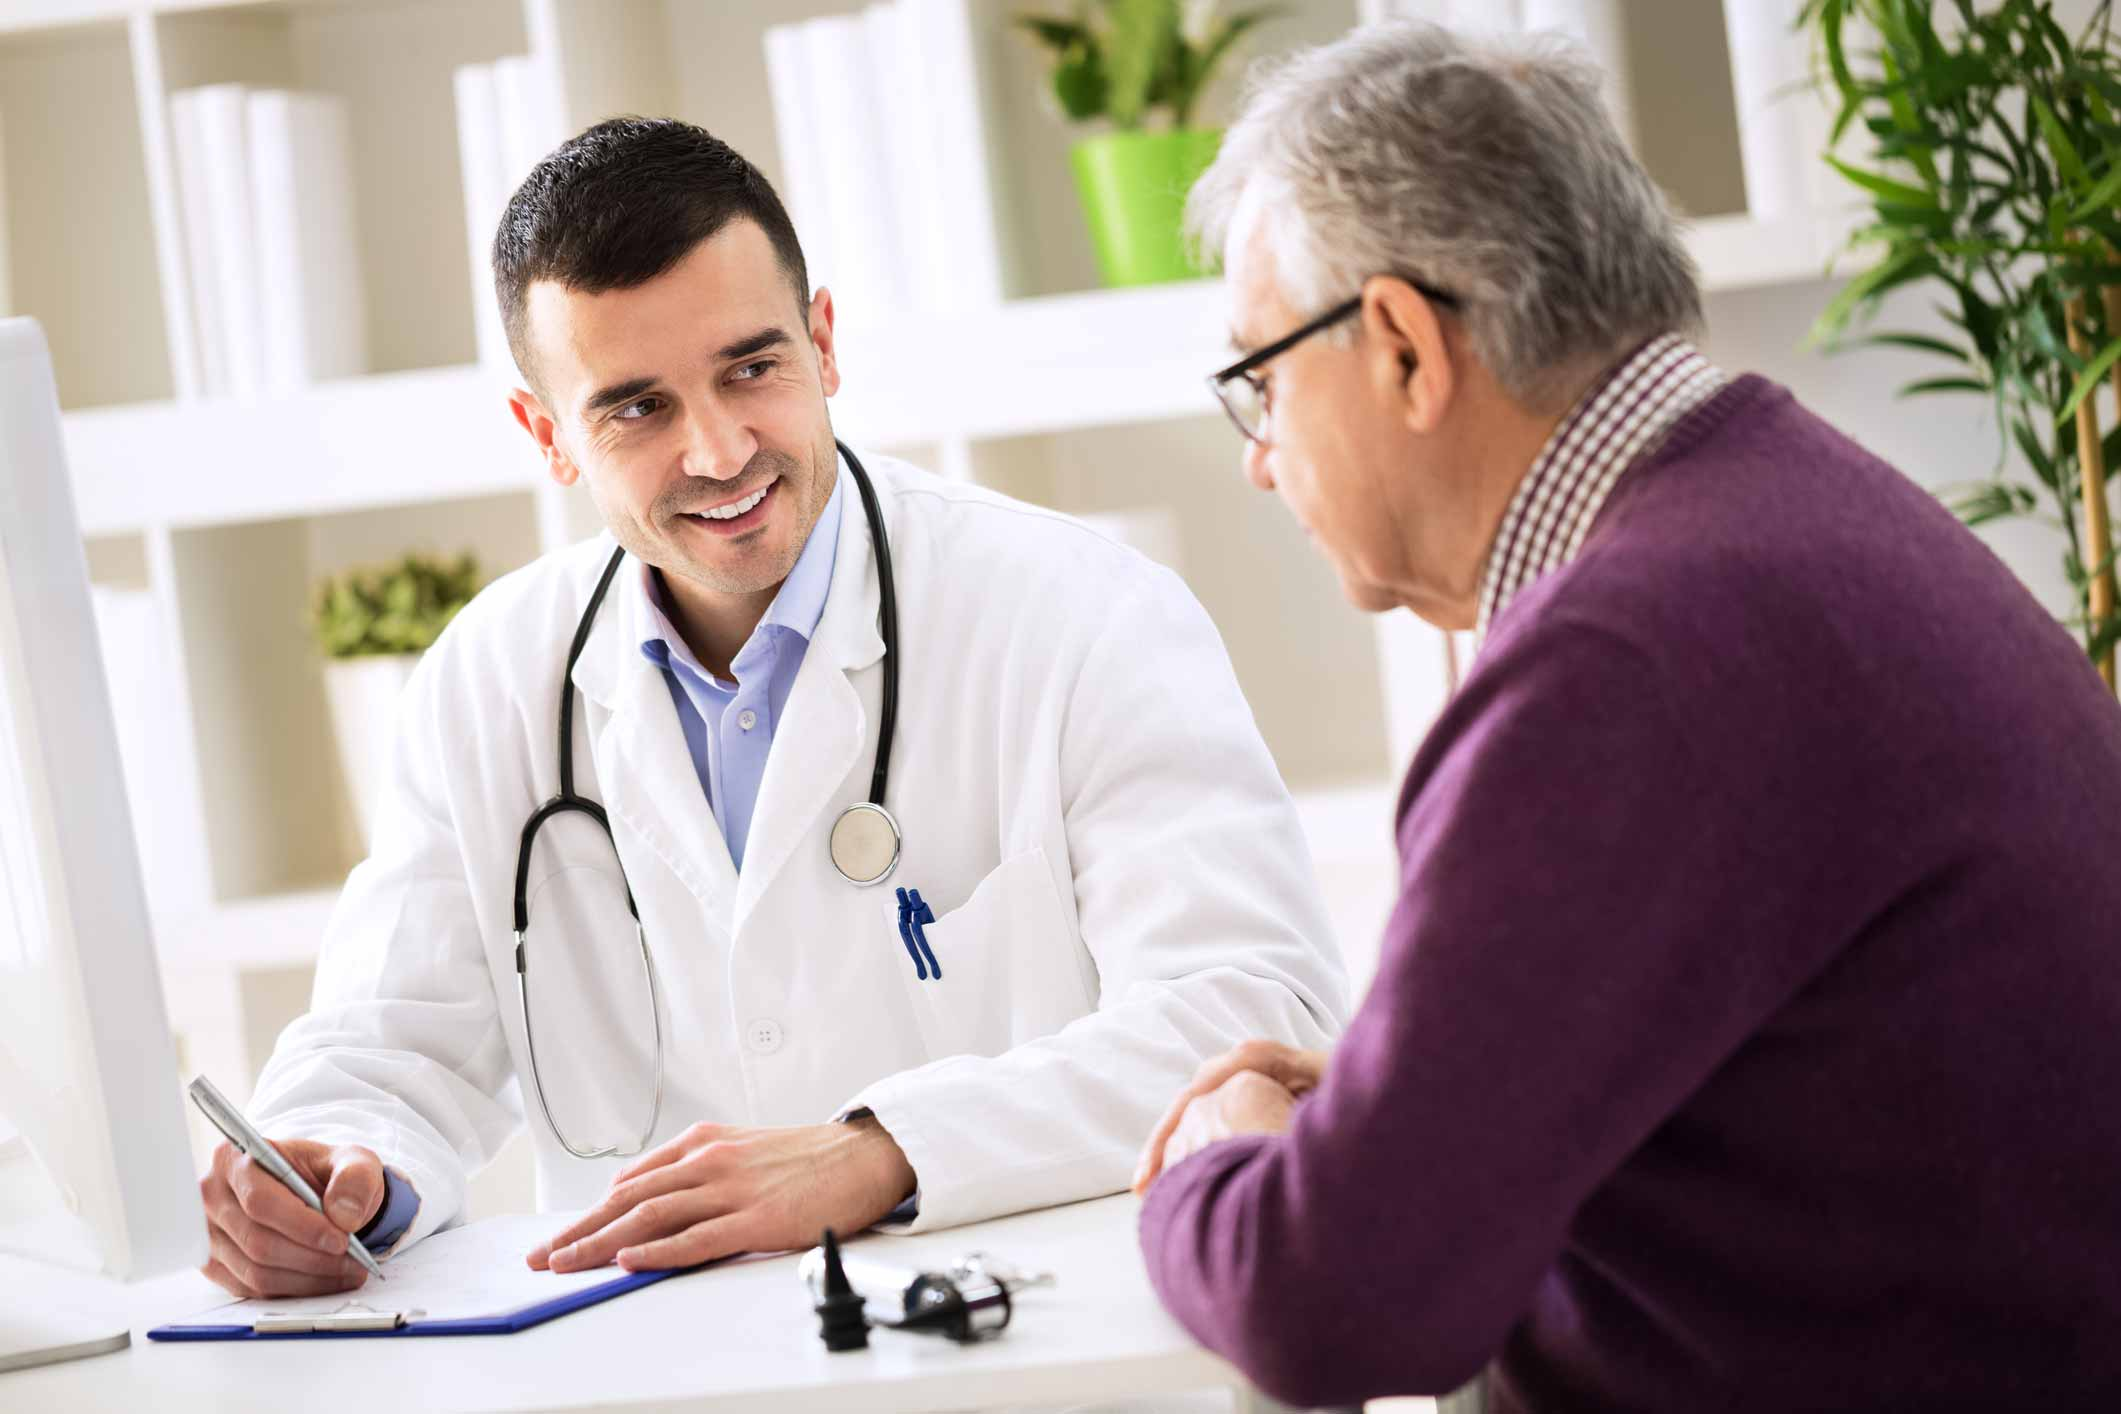 Doctor and Patient Consultation Sitting at Table